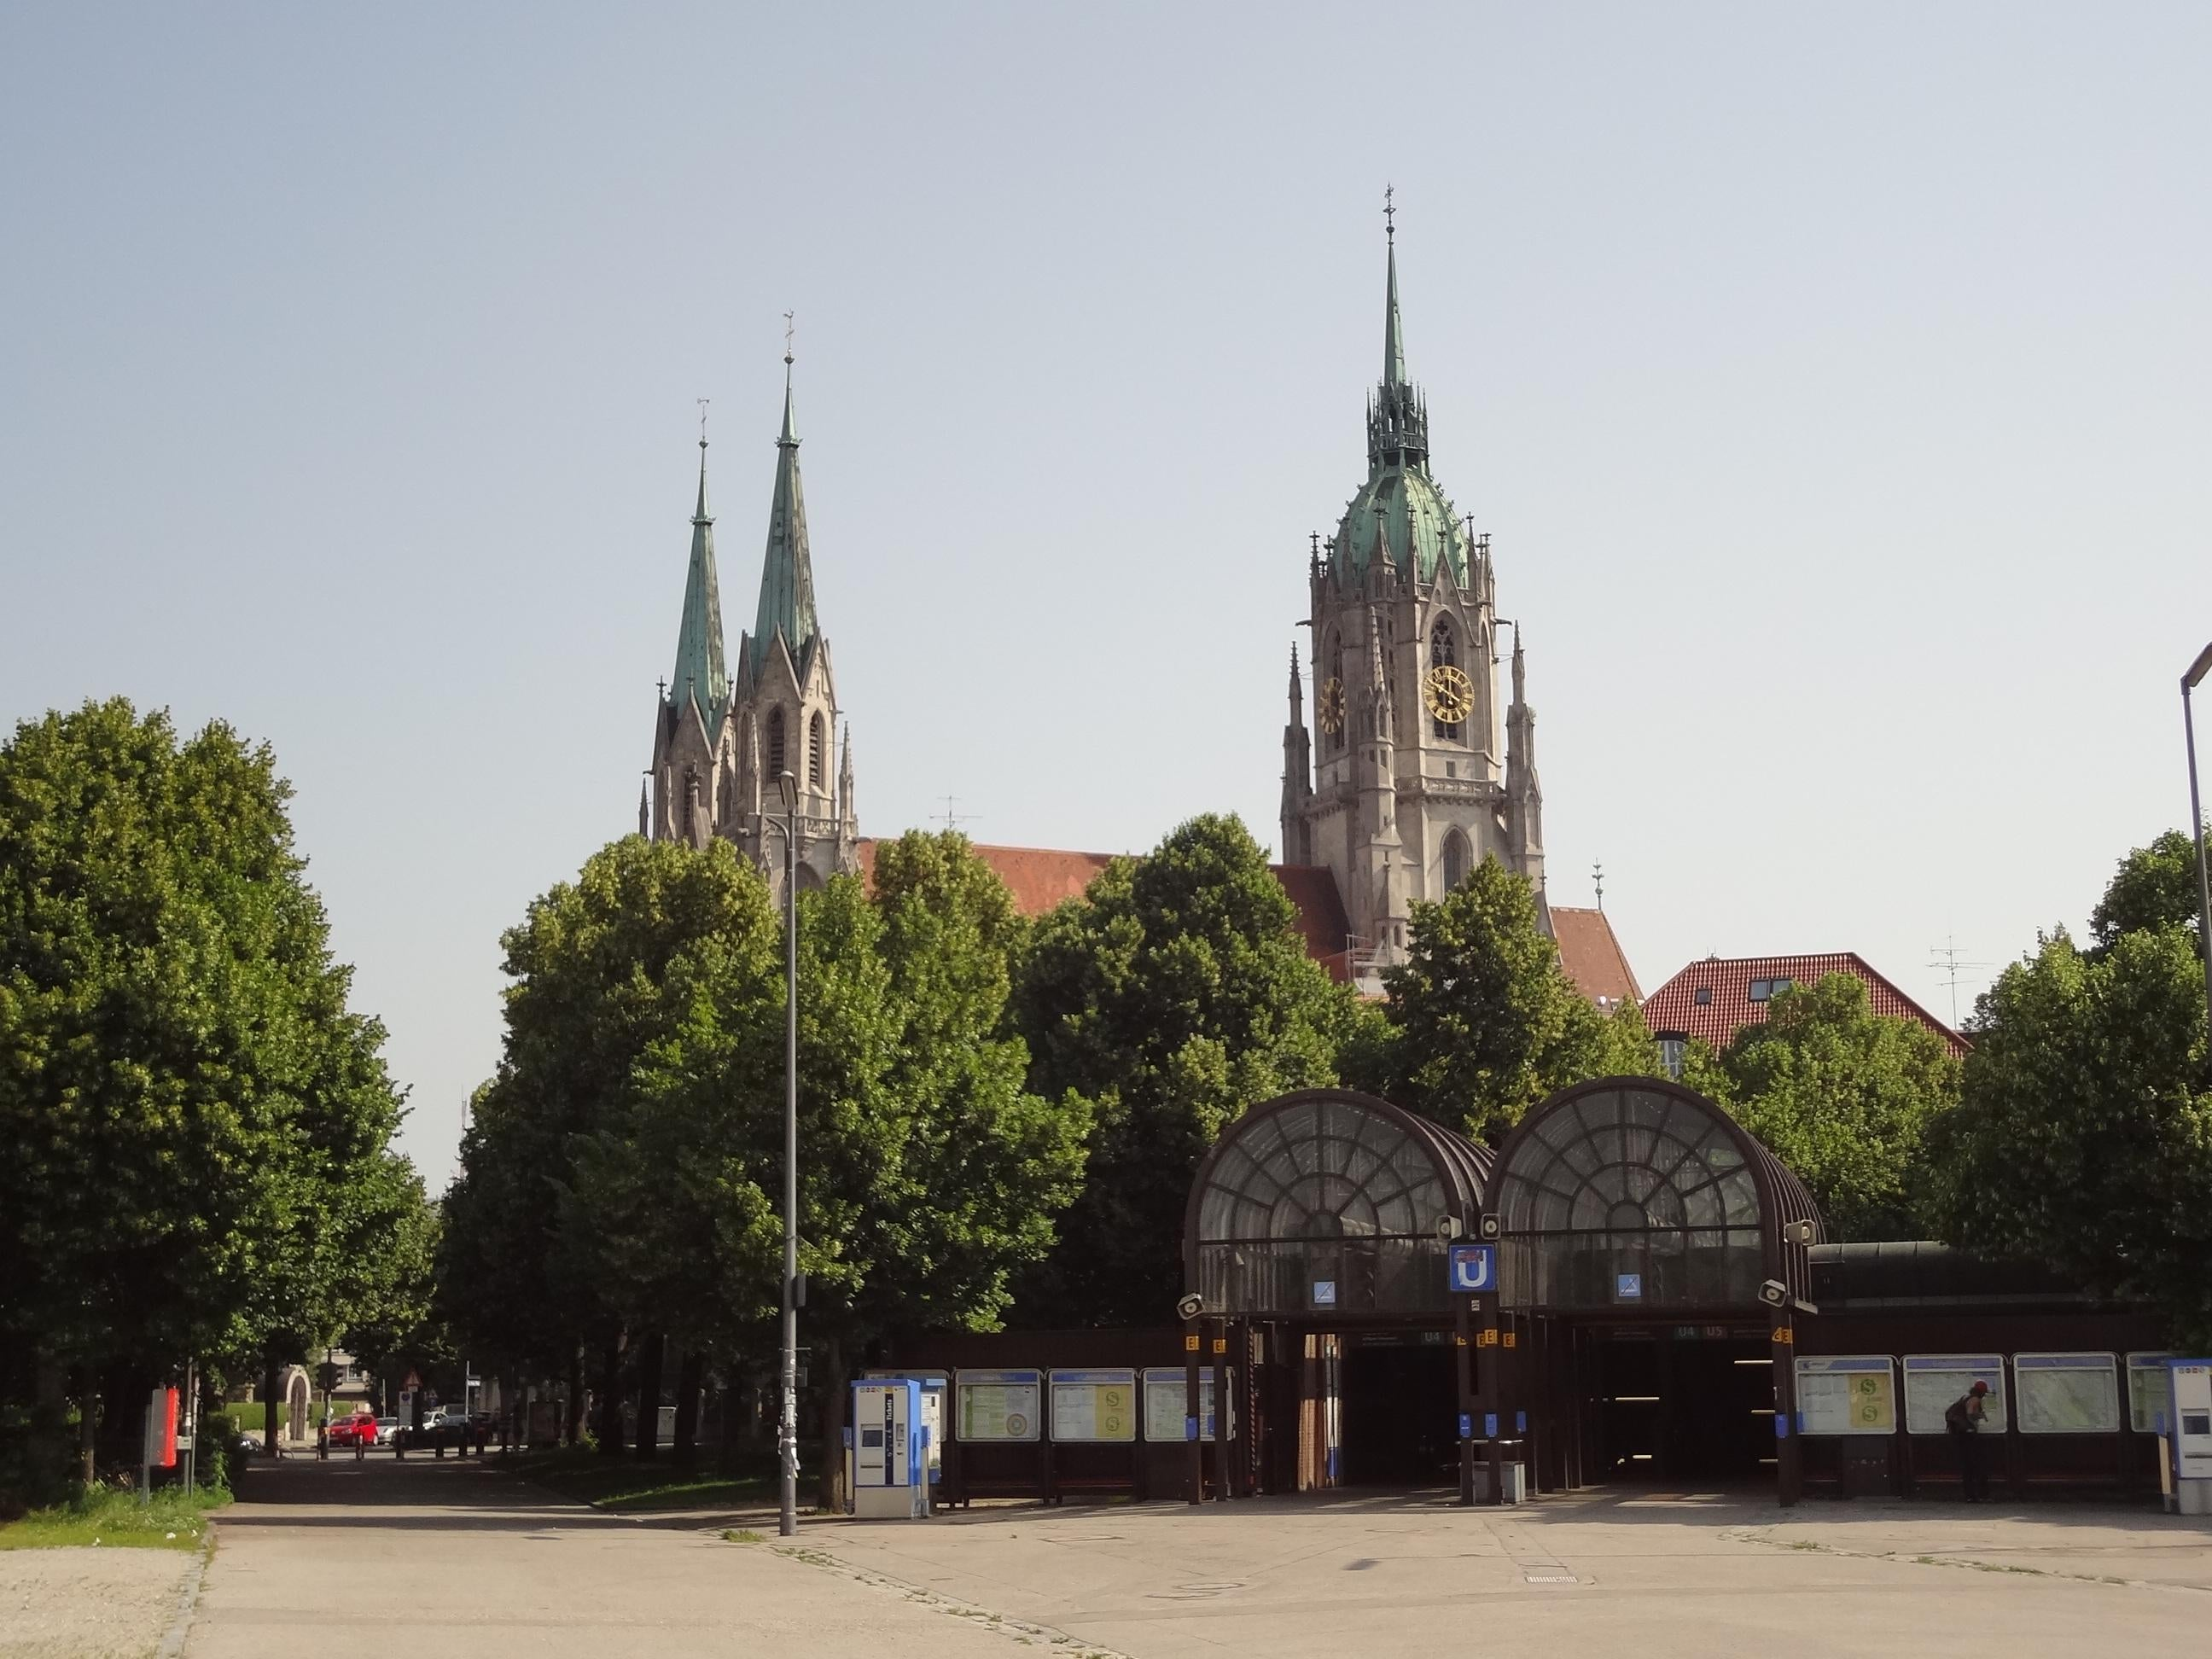 Photos of Theresienwiese - Images